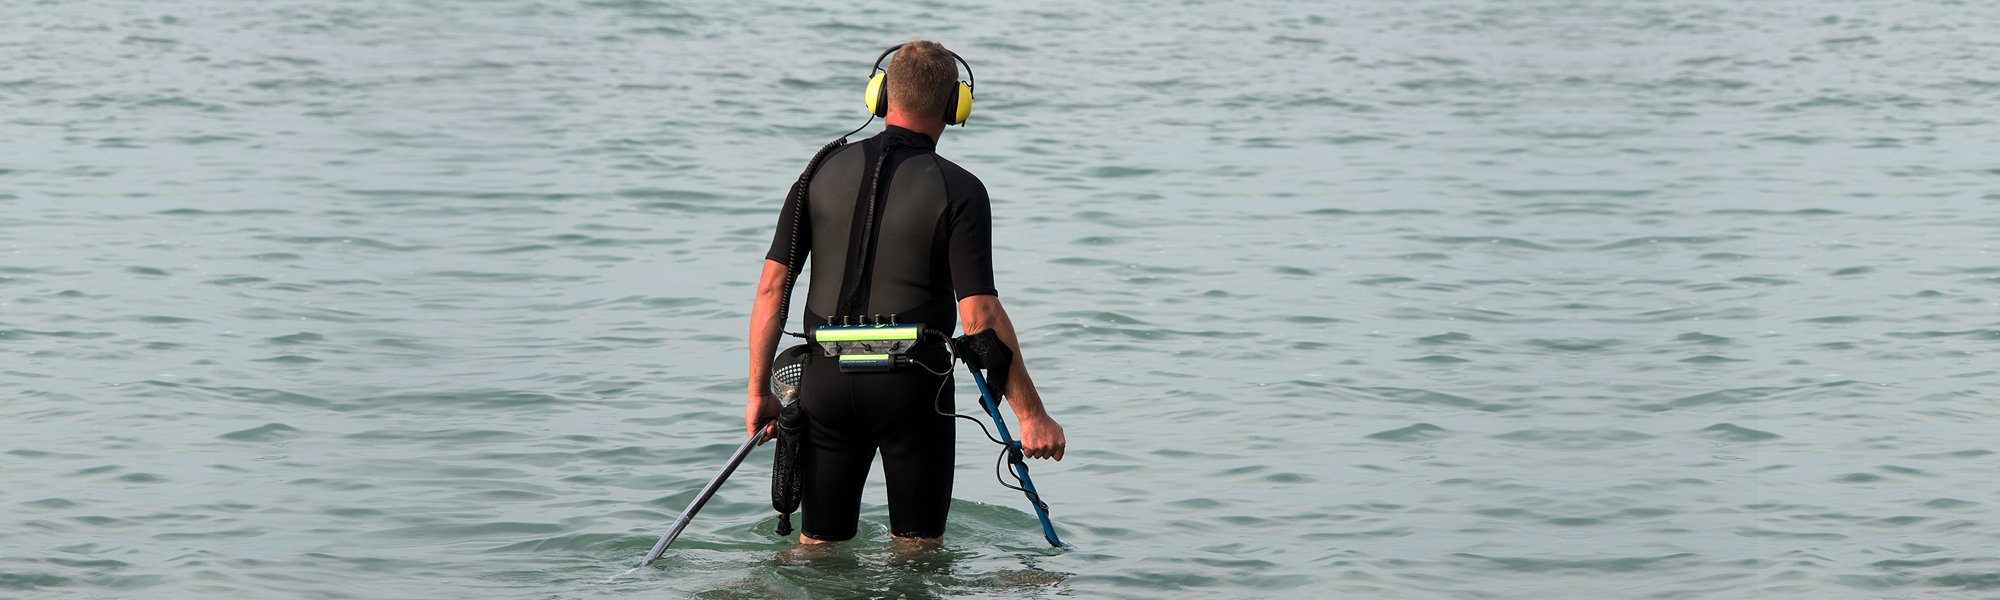 Man in the water with metal detector